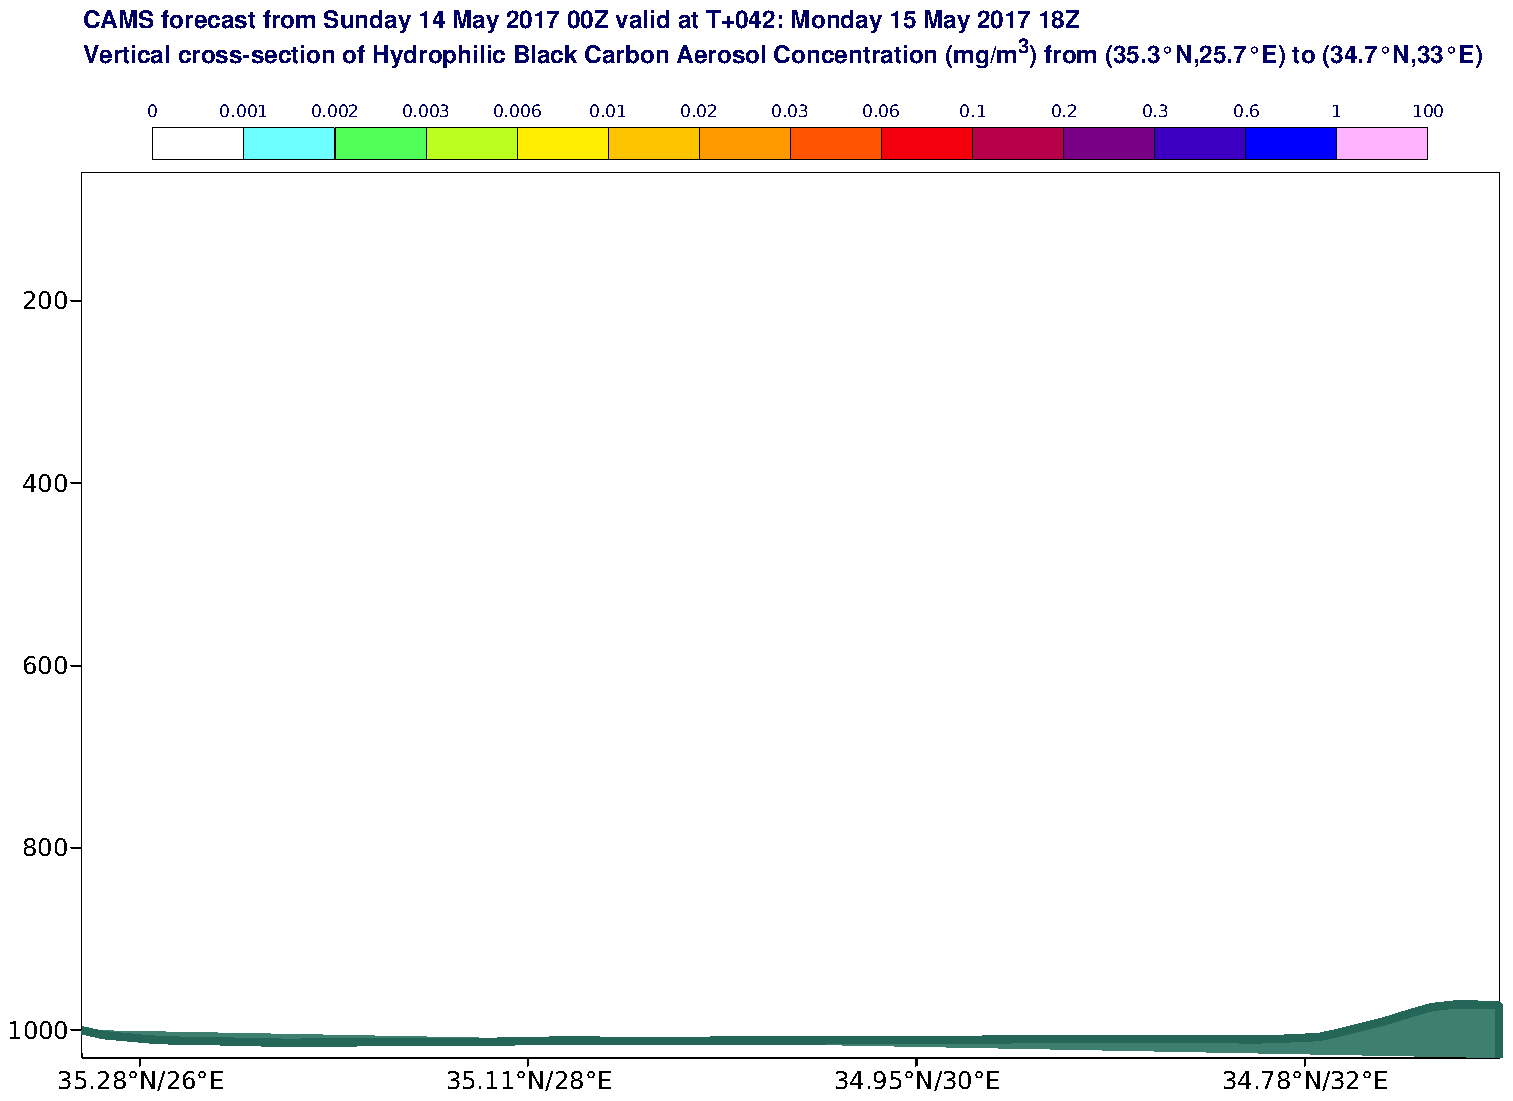 Vertical cross-section of Hydrophilic Black Carbon Aerosol Concentration (mg/m3) valid at T42 - 2017-05-15 18:00